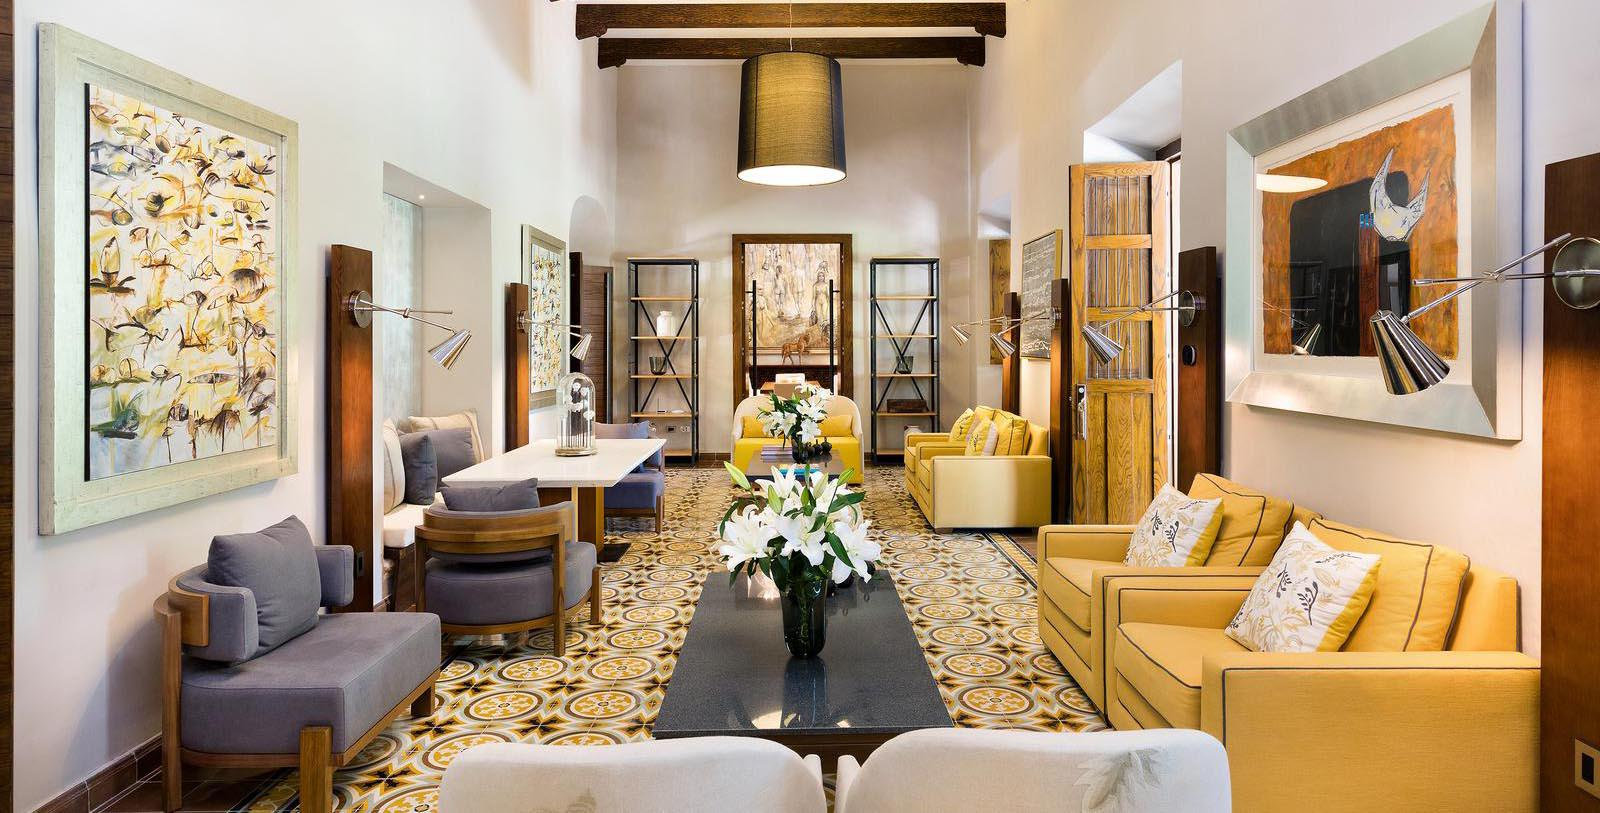 Image of lobby lounge Chablé Resort & Spa, 1650, Member of Historic Hotels Worldwide, in Chocholá, Mexico, Experience